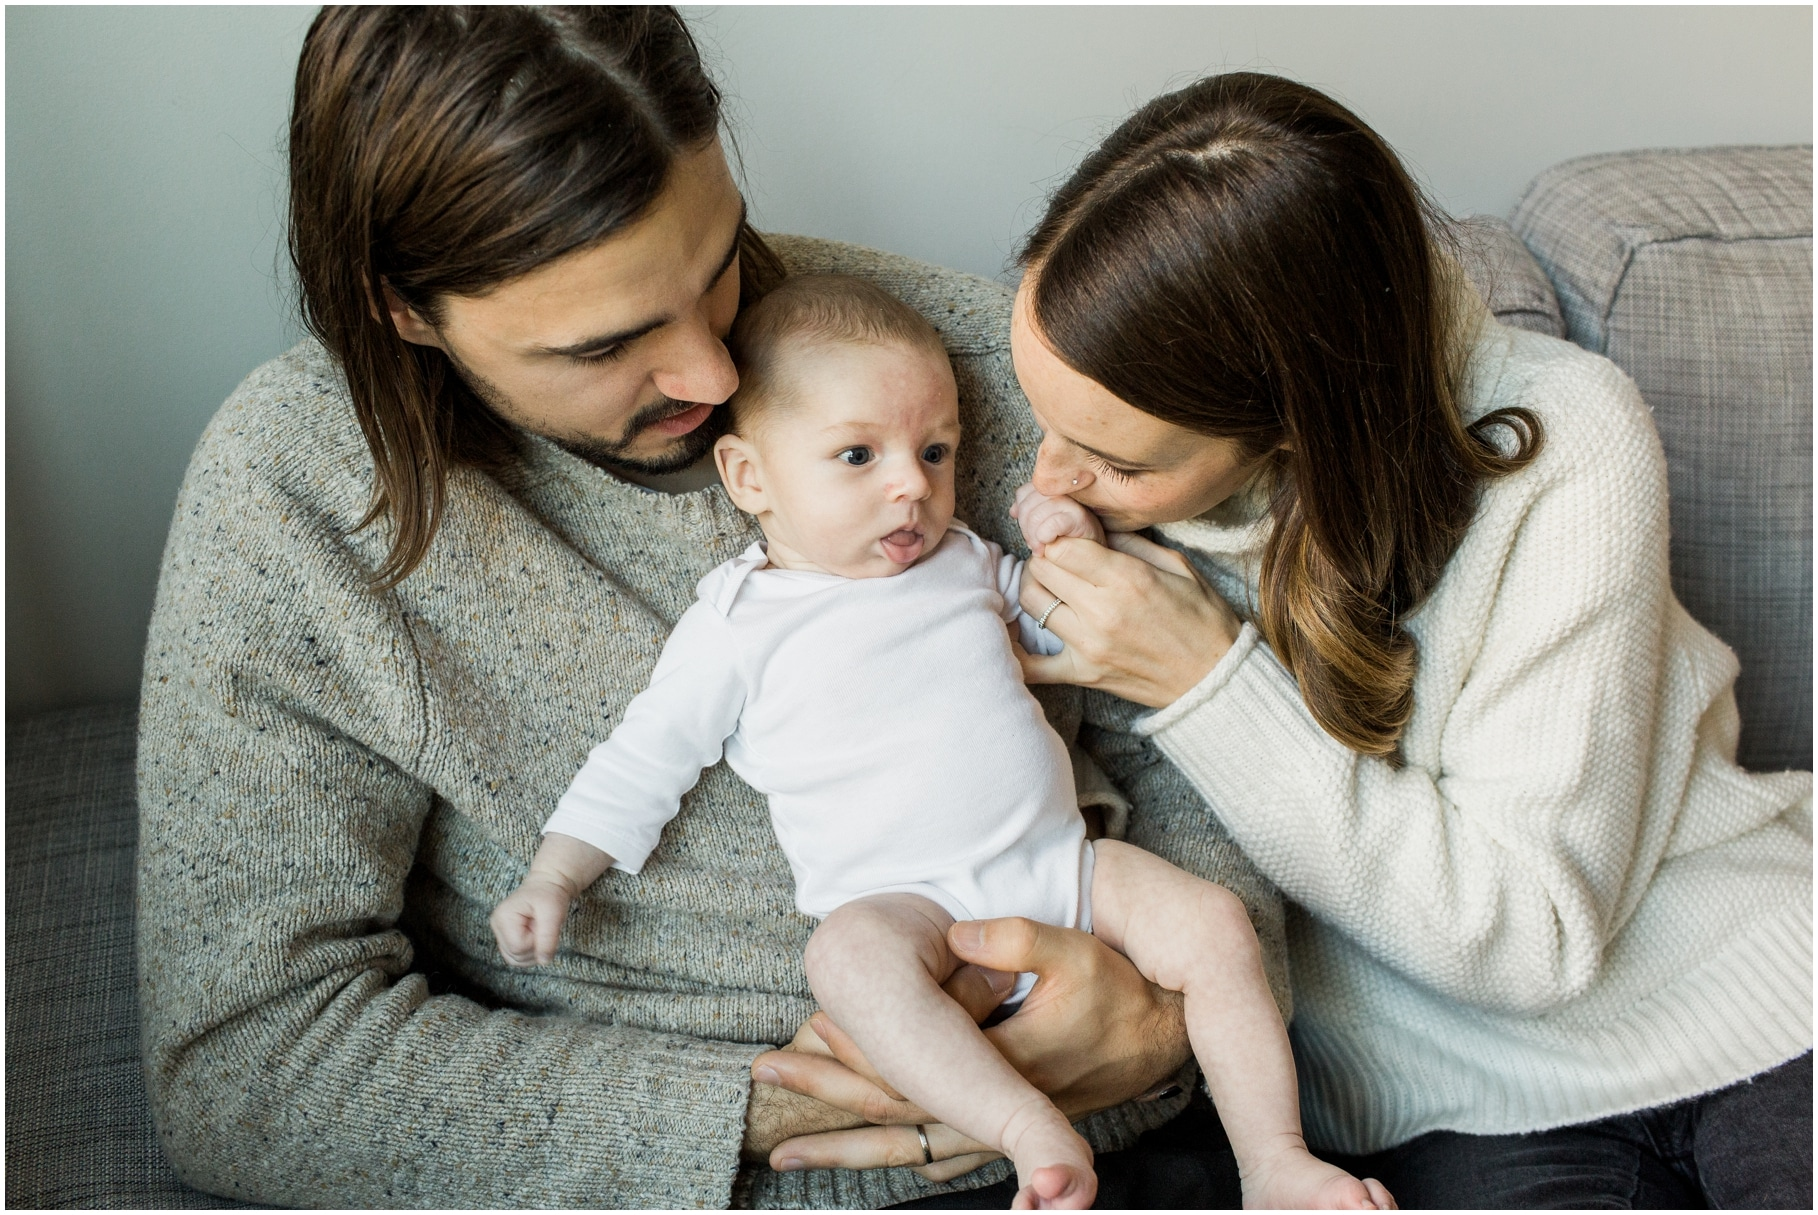 adam lowe photography, family session, nyc, brooklyn, photographer, photography, style, baby, lifestyle, Columbus, Ohio, Williamsburg,